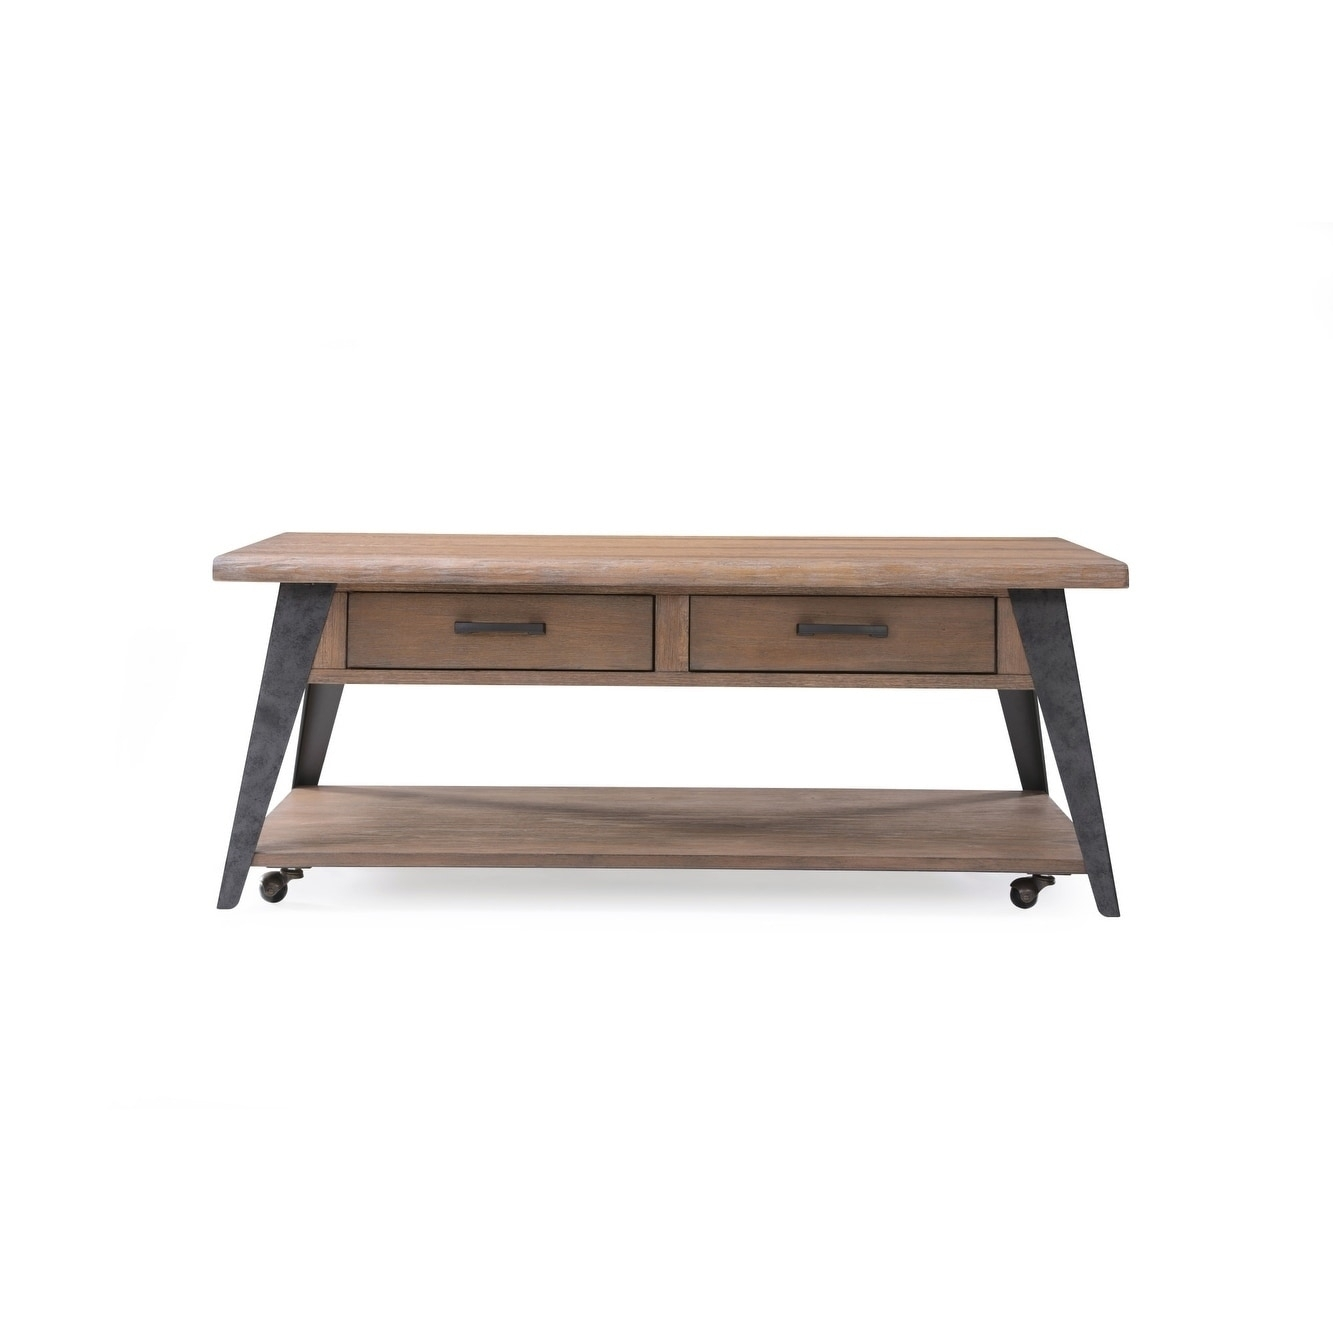 Shop Emerald Home Harper's Mill Weathered Tan Coffee Table - Free within Mill Coffee Tables (Image 26 of 30)